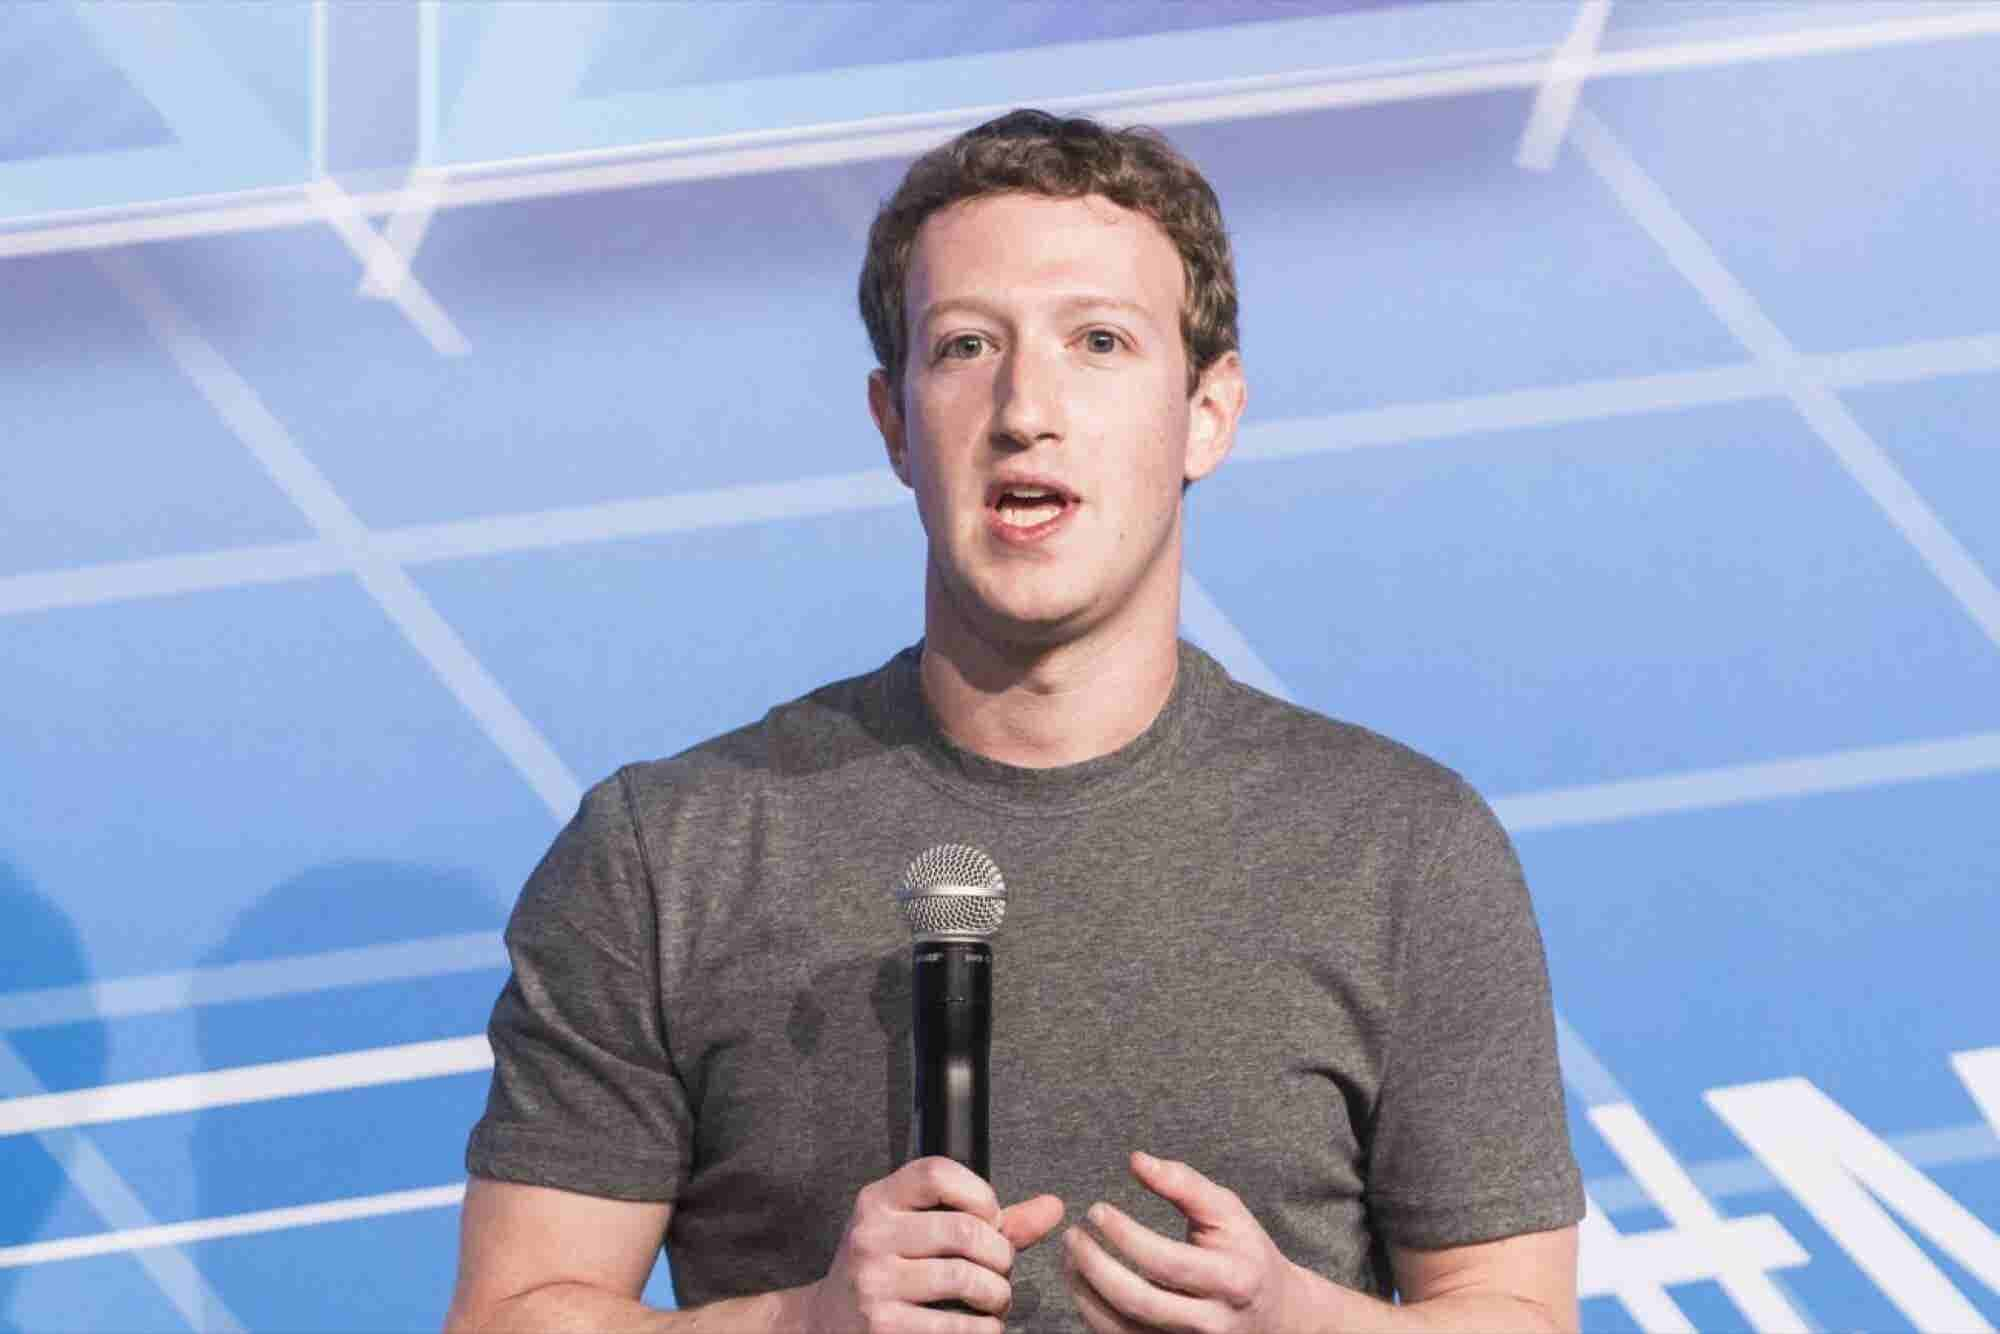 Watch Mark Zuckerberg Chat Live With International Space Station Astronauts Today